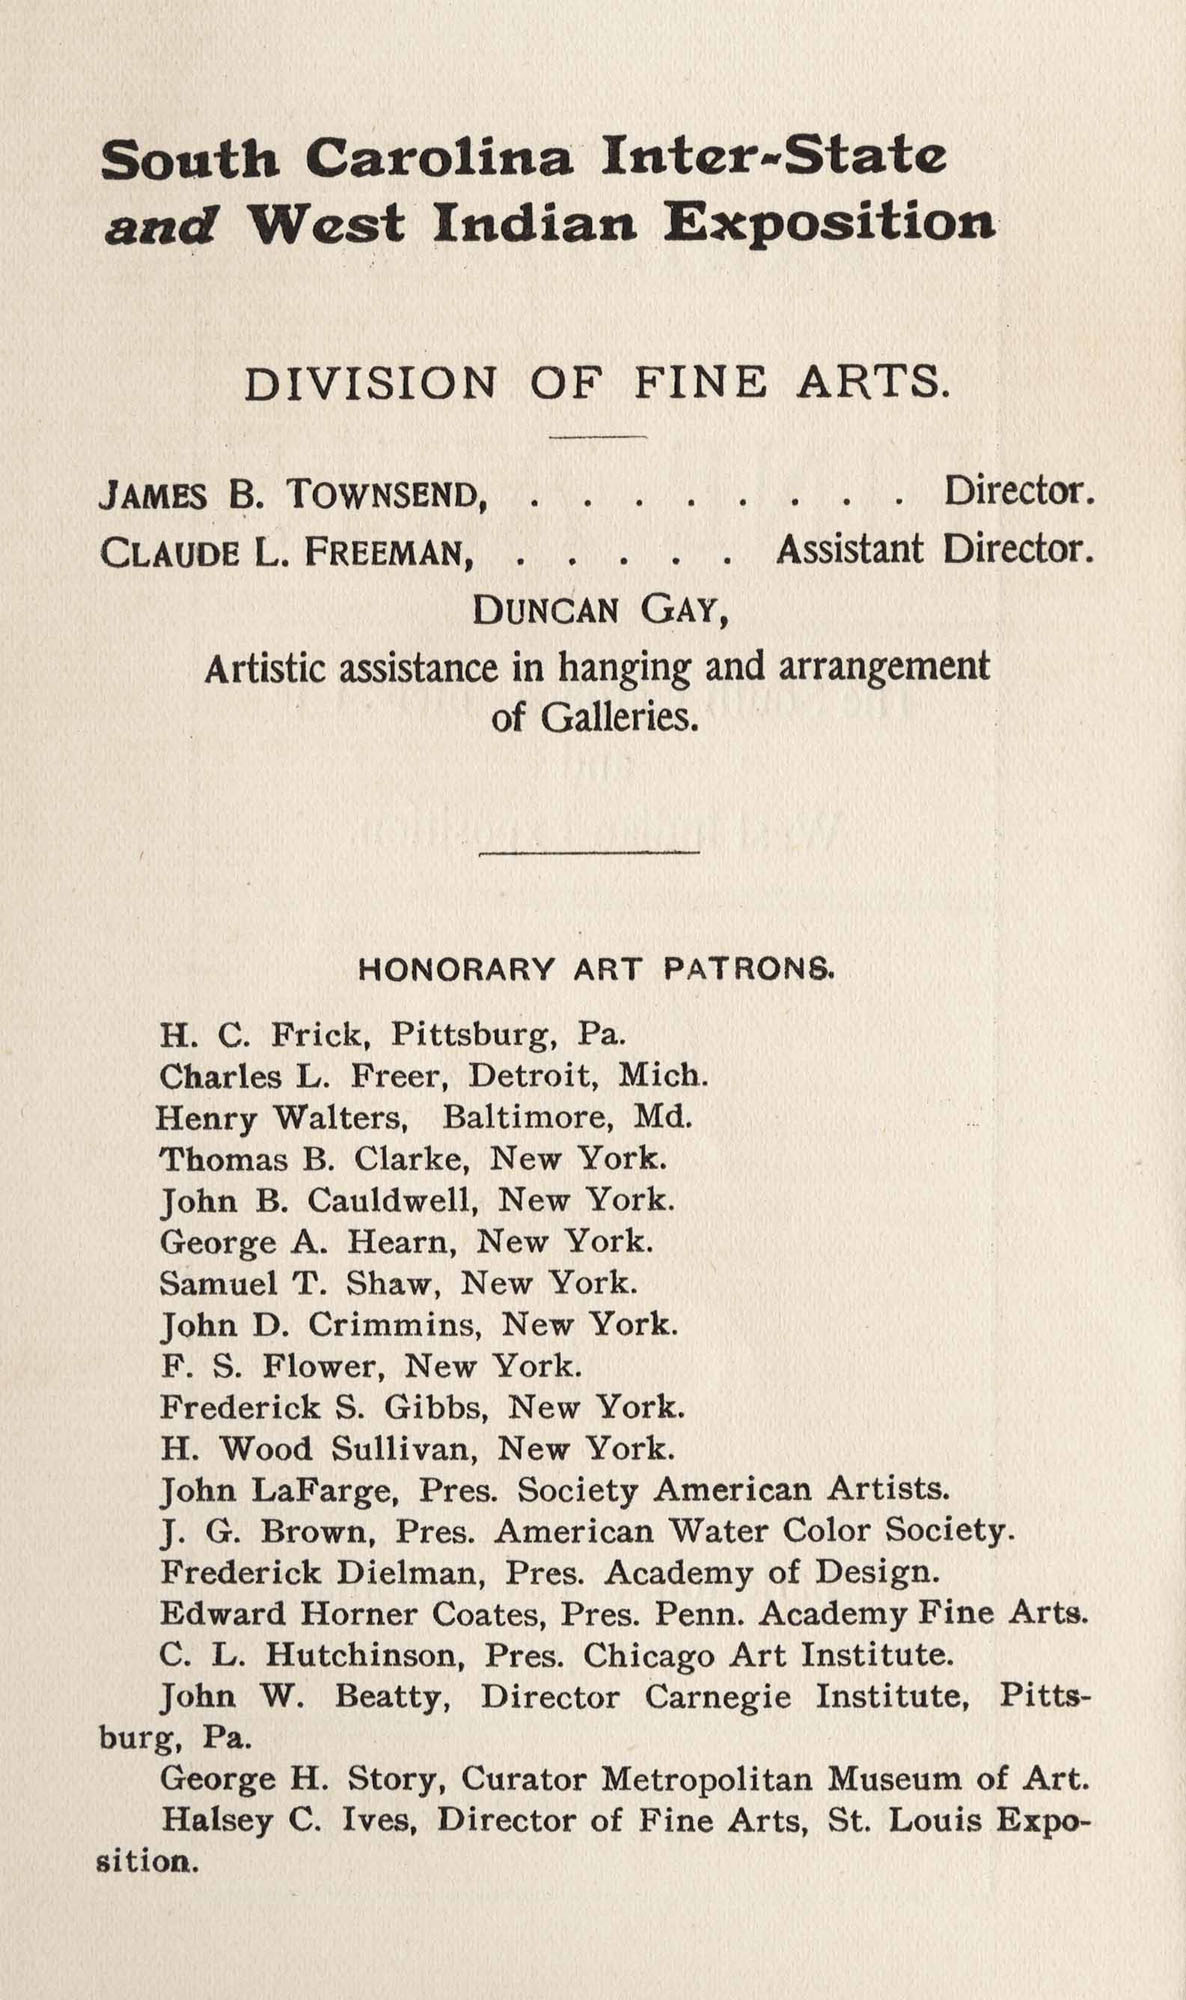 Fine Arts Board and Honorary Patrons